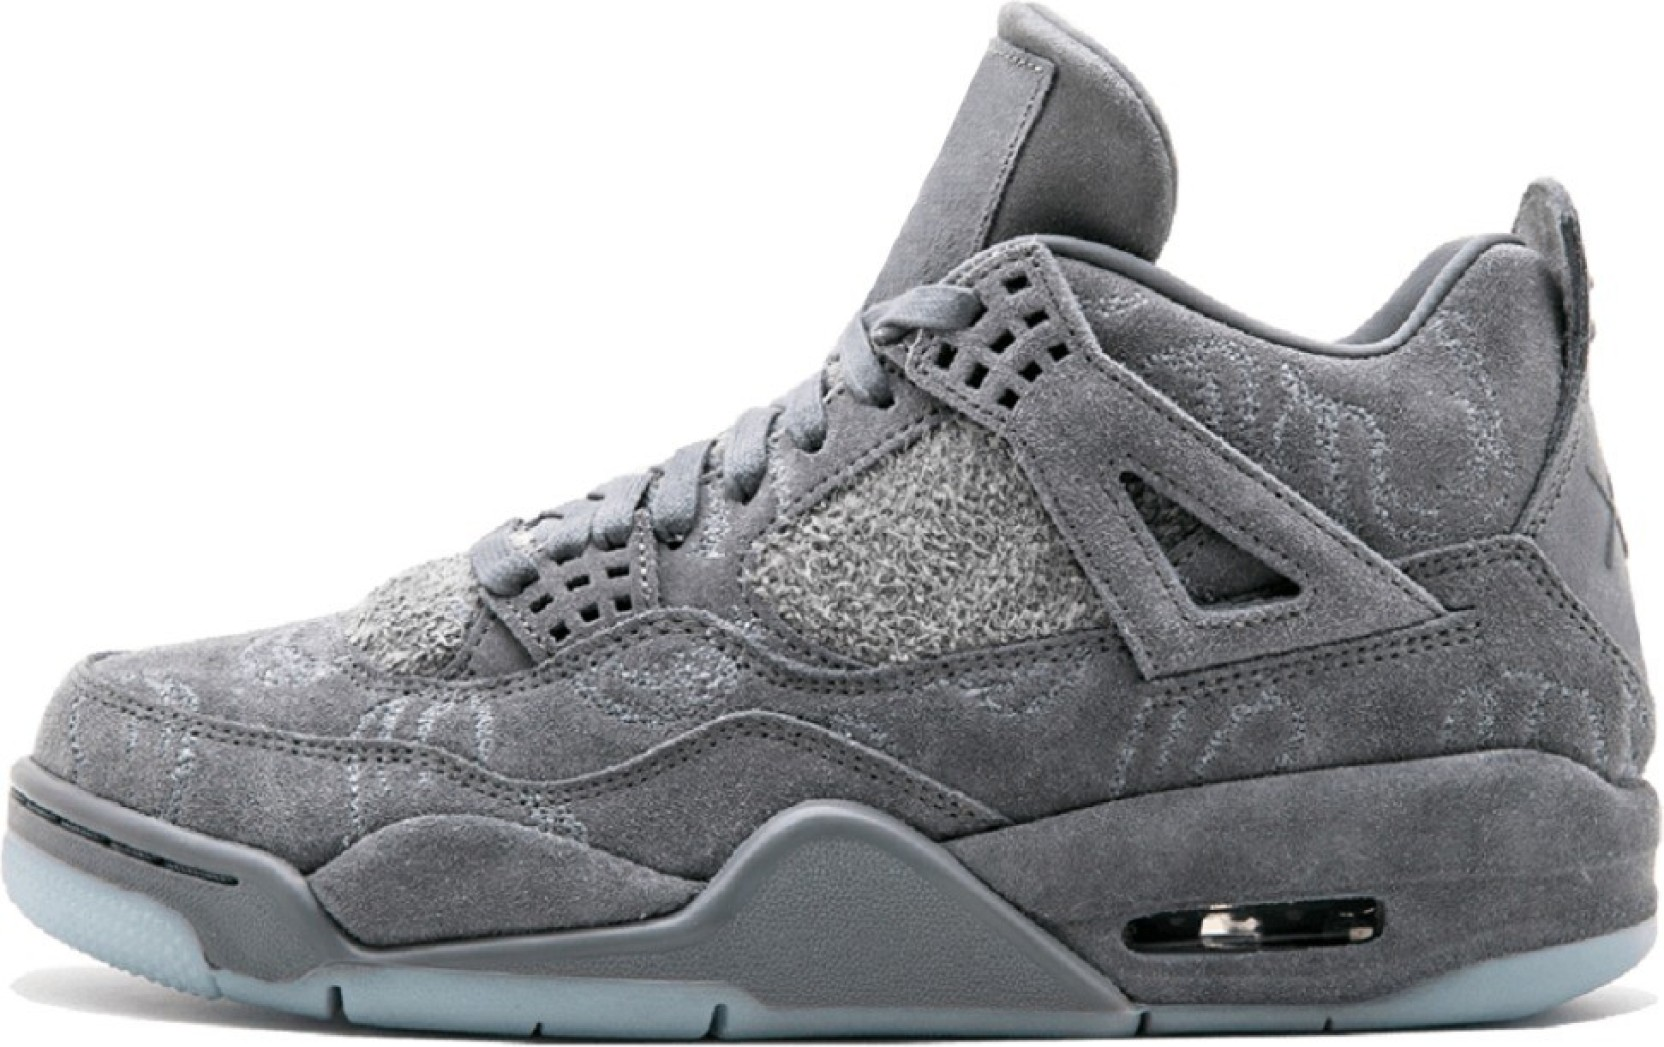 new style a4bff c56a4 Air Jordan 4 Retro Kaws Running Shoes For Men (Grey)